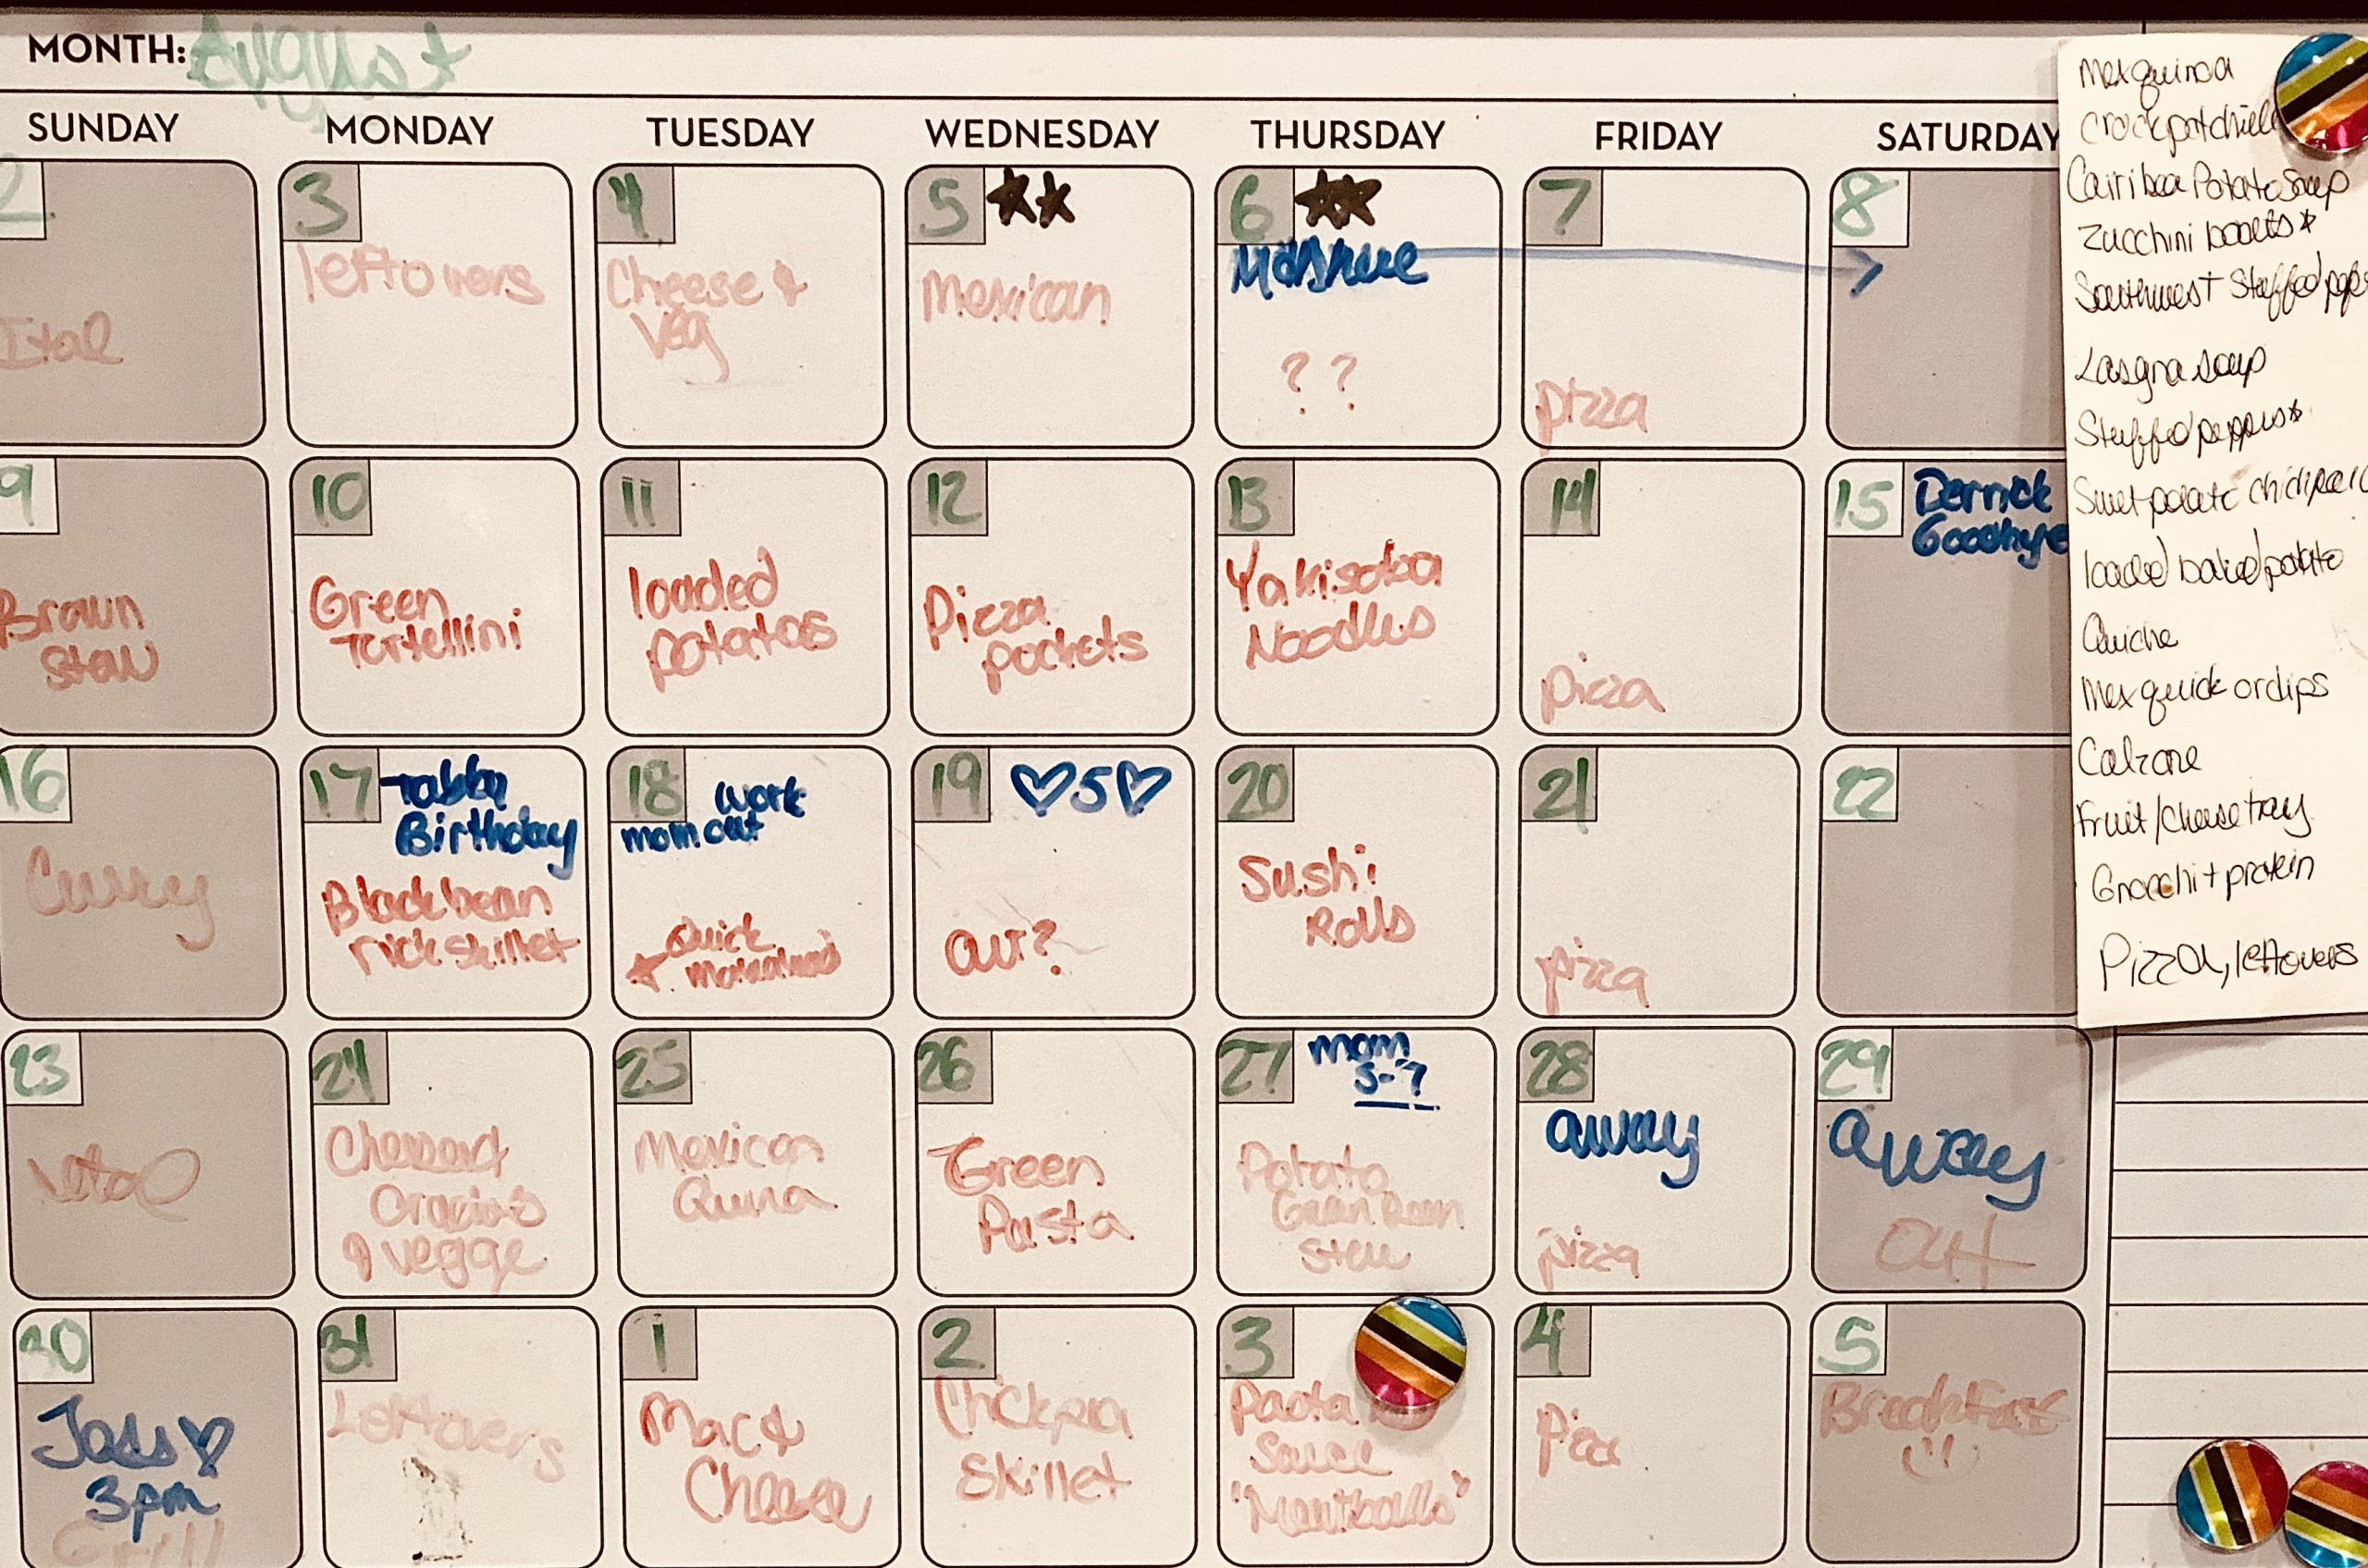 monthly meal plan schedule